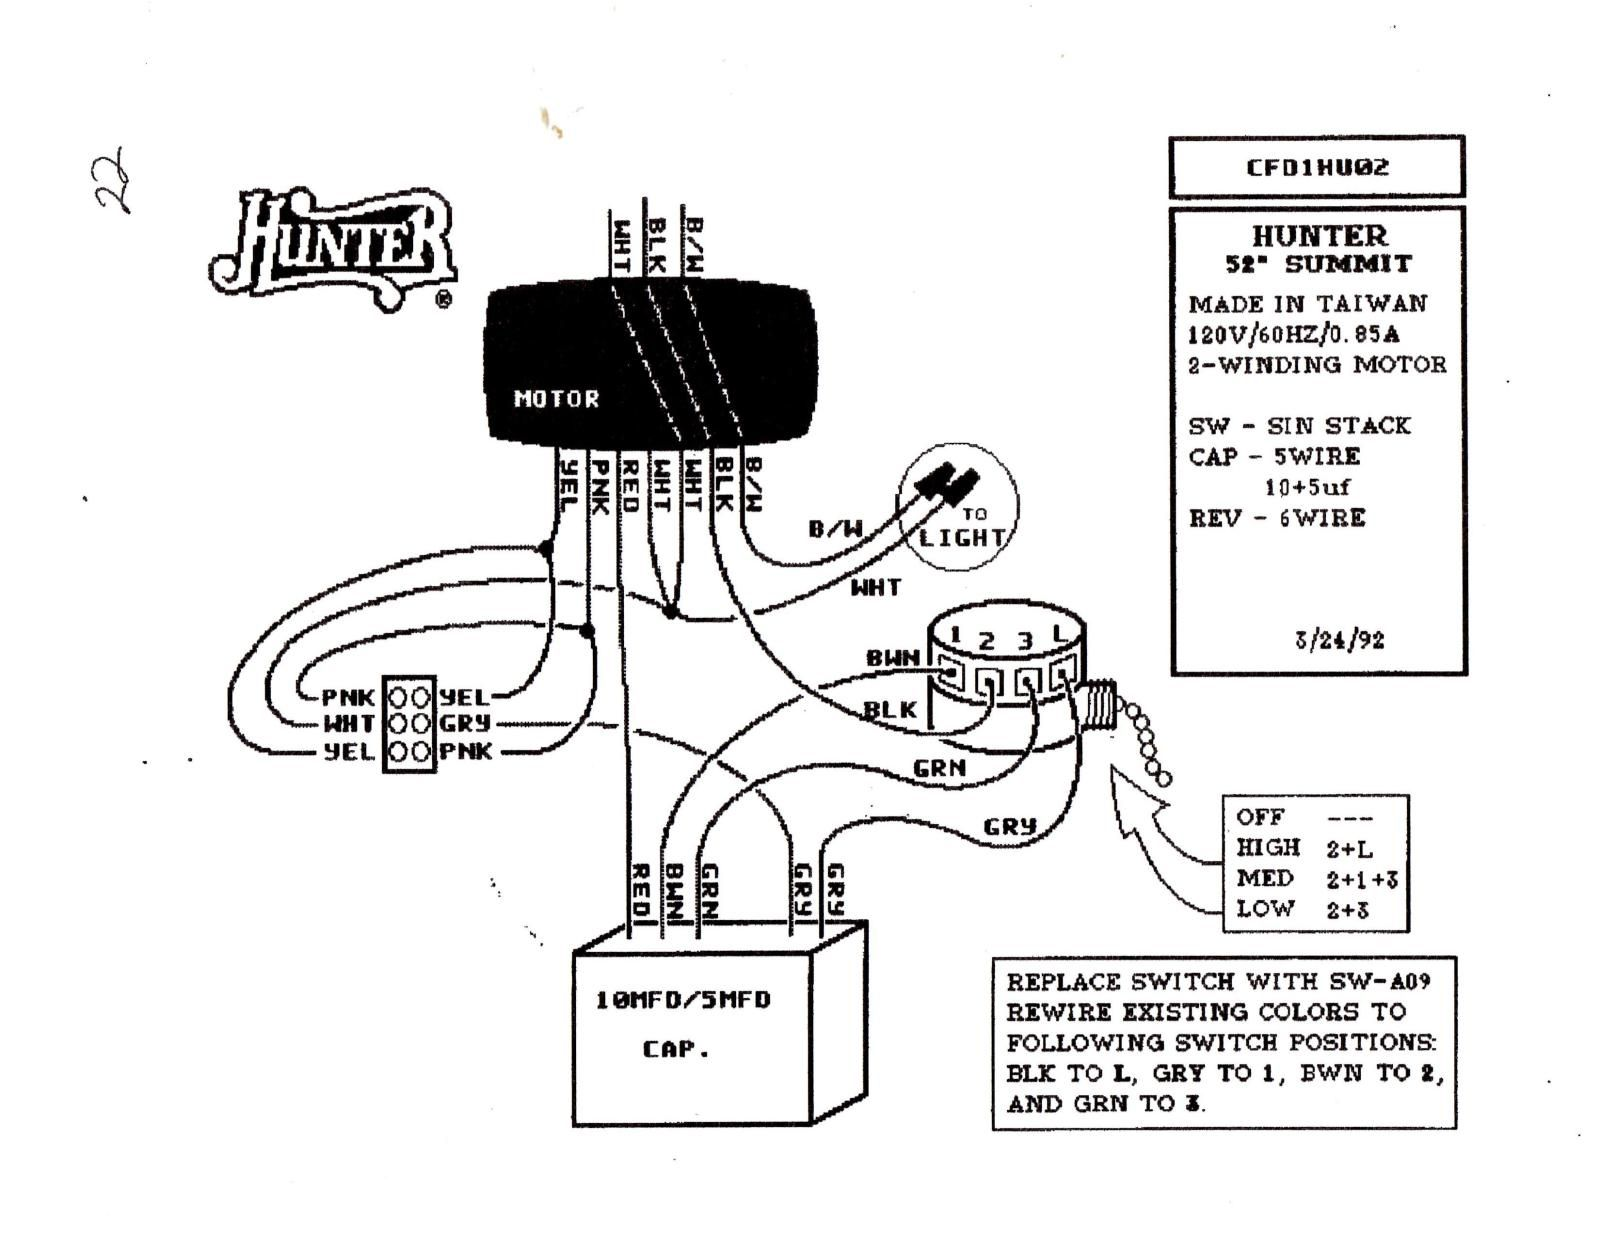 Hunter Ceiling Fan Speed Switch Wiring Diagram In 2019